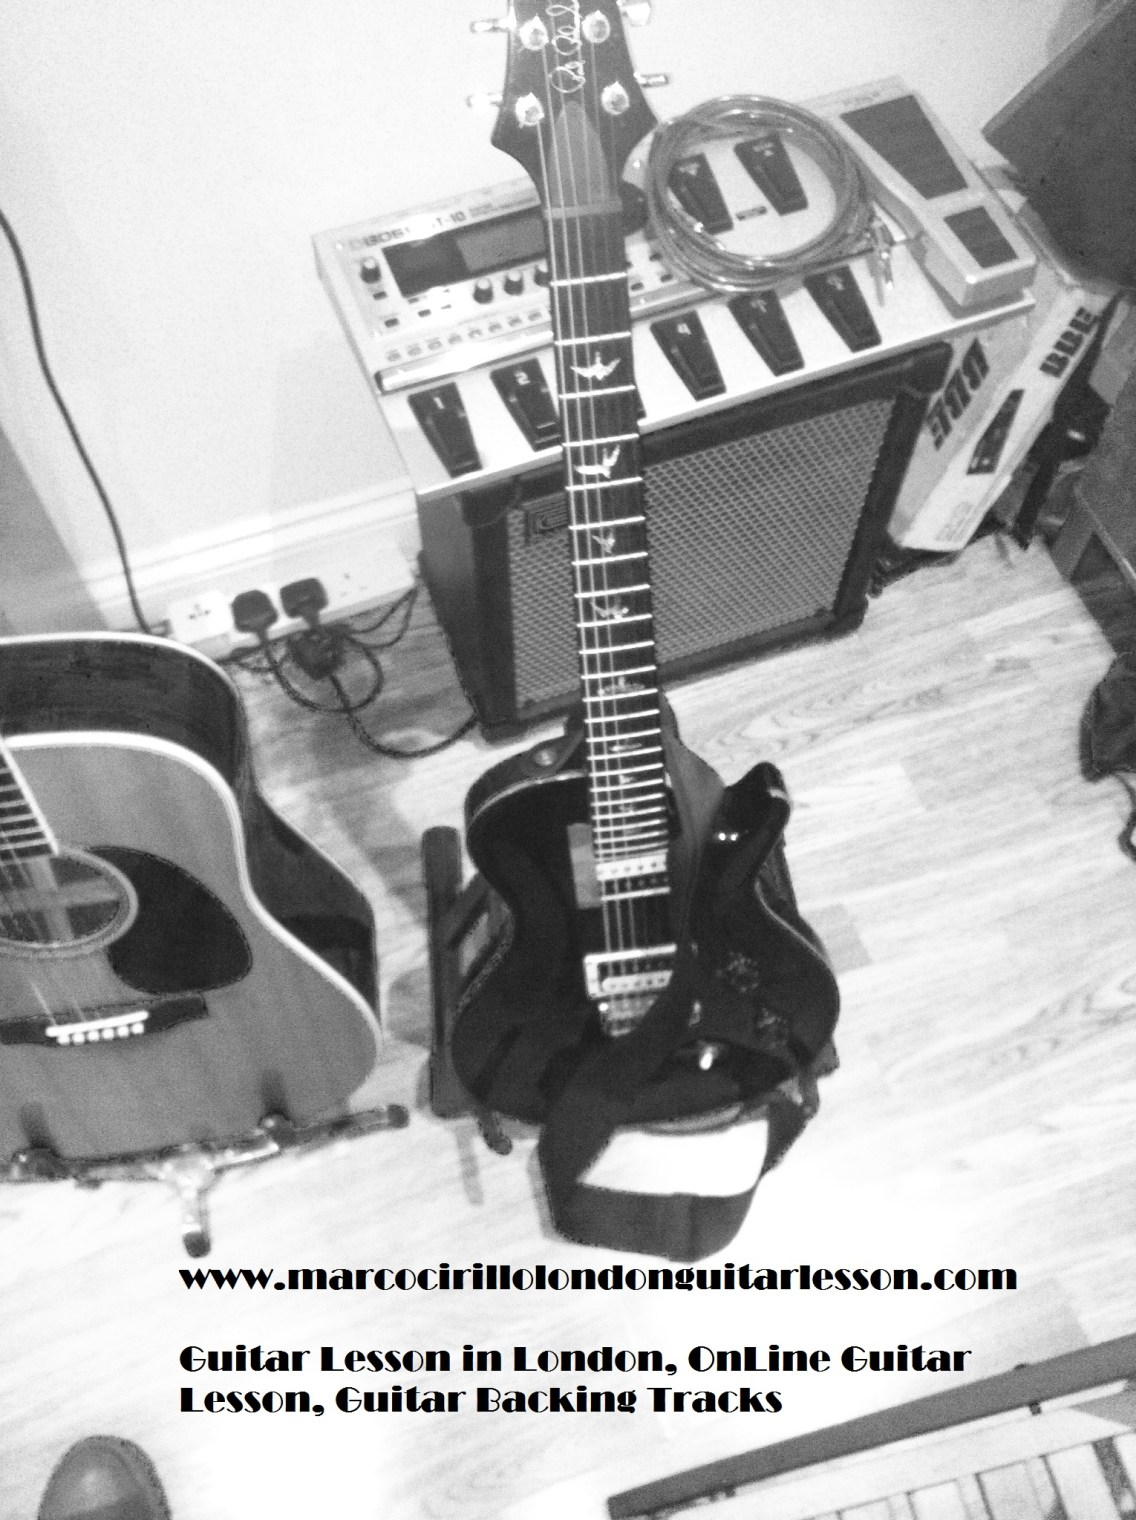 Guitar Lesson North West London - Guitar Lesson Central London - London Guitar Teacher.